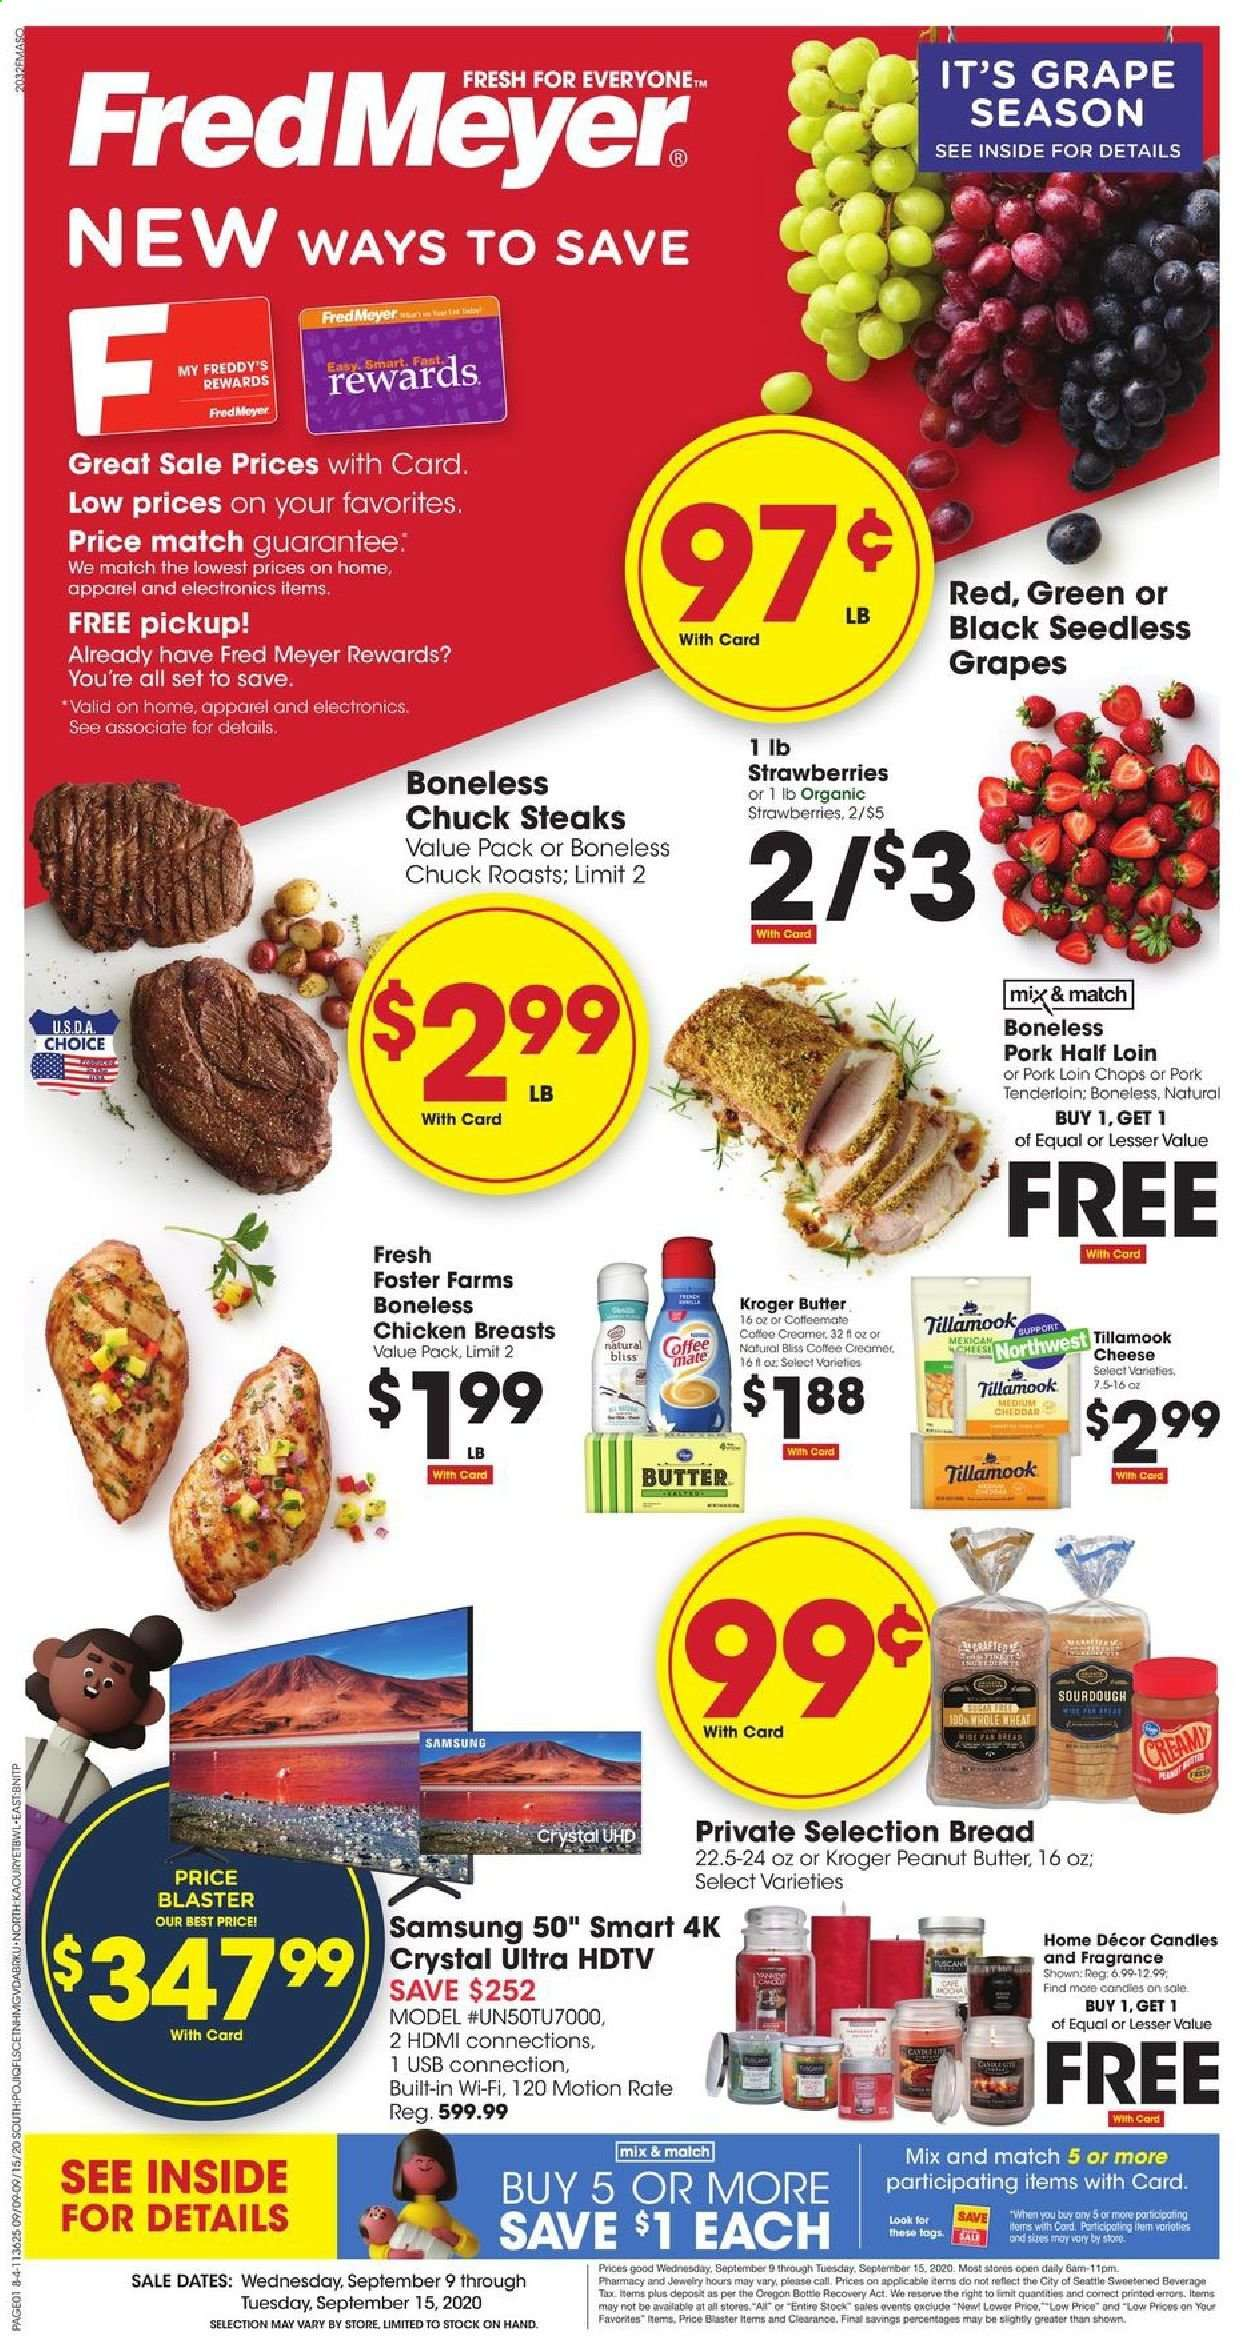 Fred Meyer Flyer - 09.09.2020 - 09.15.2020 - Sales products - bread, candle, fragrance, grapes, Samsung, seedless grapes, strawberries, wifi, hdtv, pork loin, pork meat, pork tenderloin, chicken, chicken breast, peanut butter, cheese, creamer, coffee creamer, USB. Page 1.